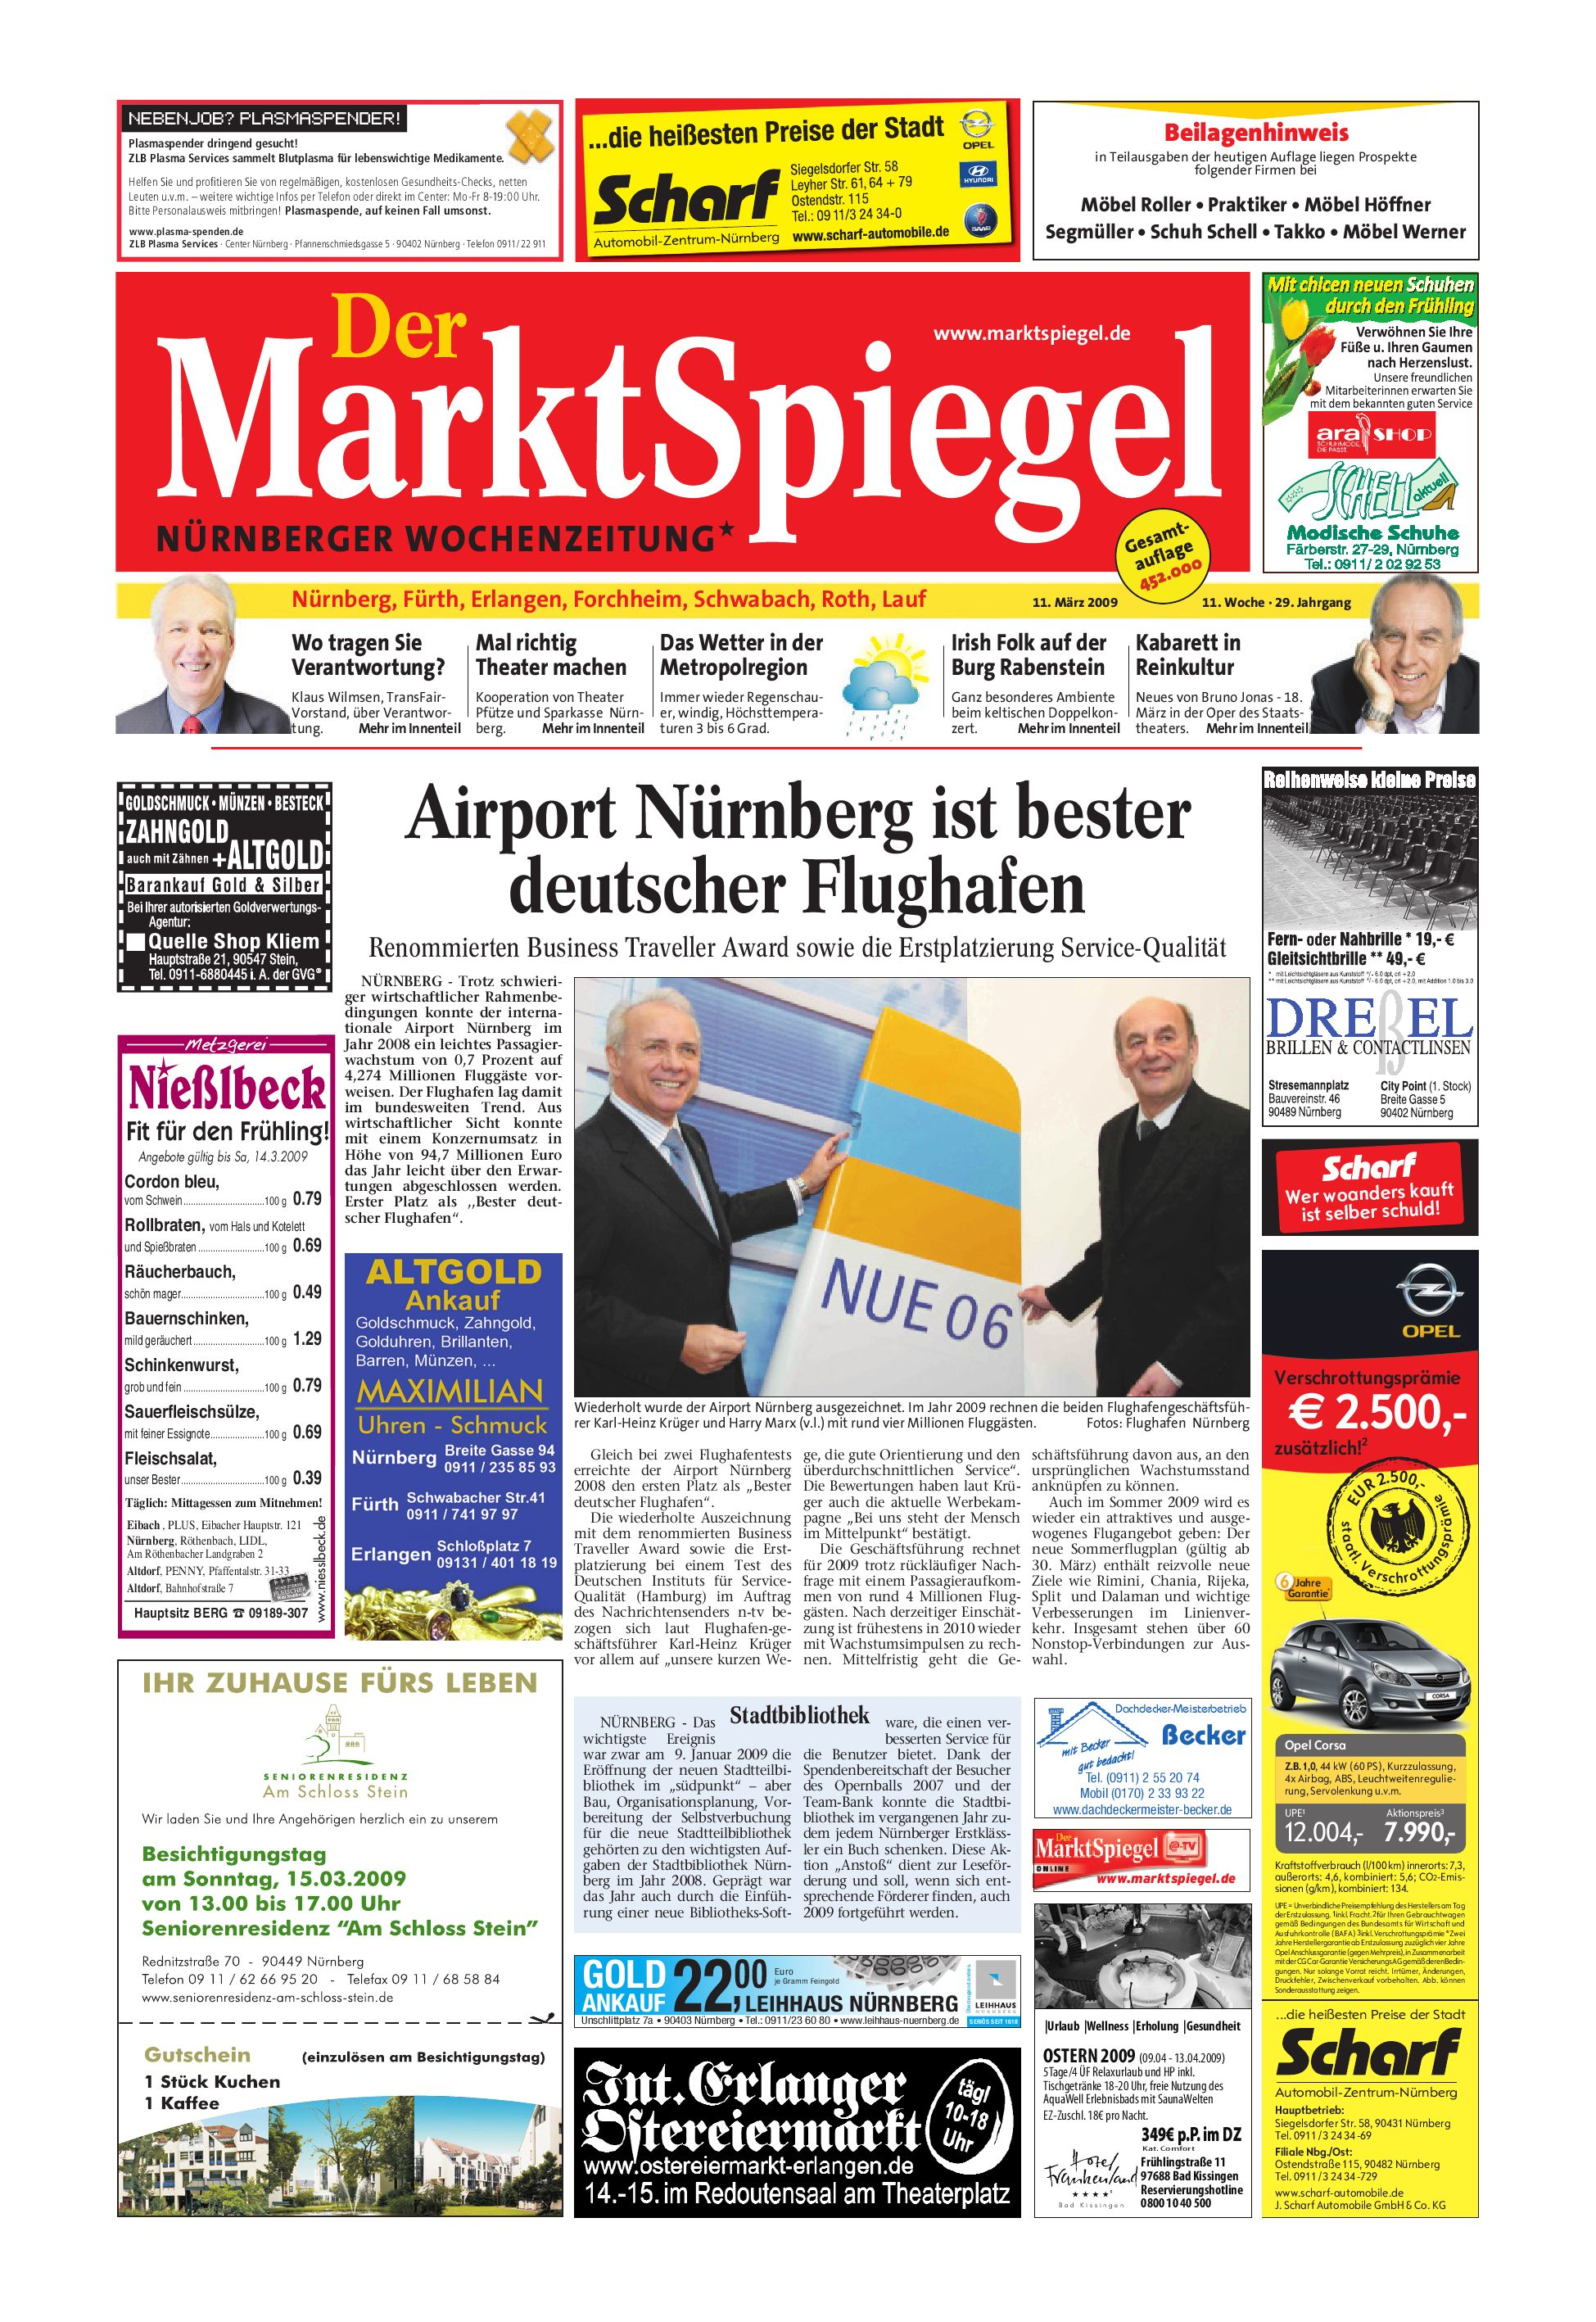 Der MarktSpiegel KW 11 09 by A Kreklau issuu